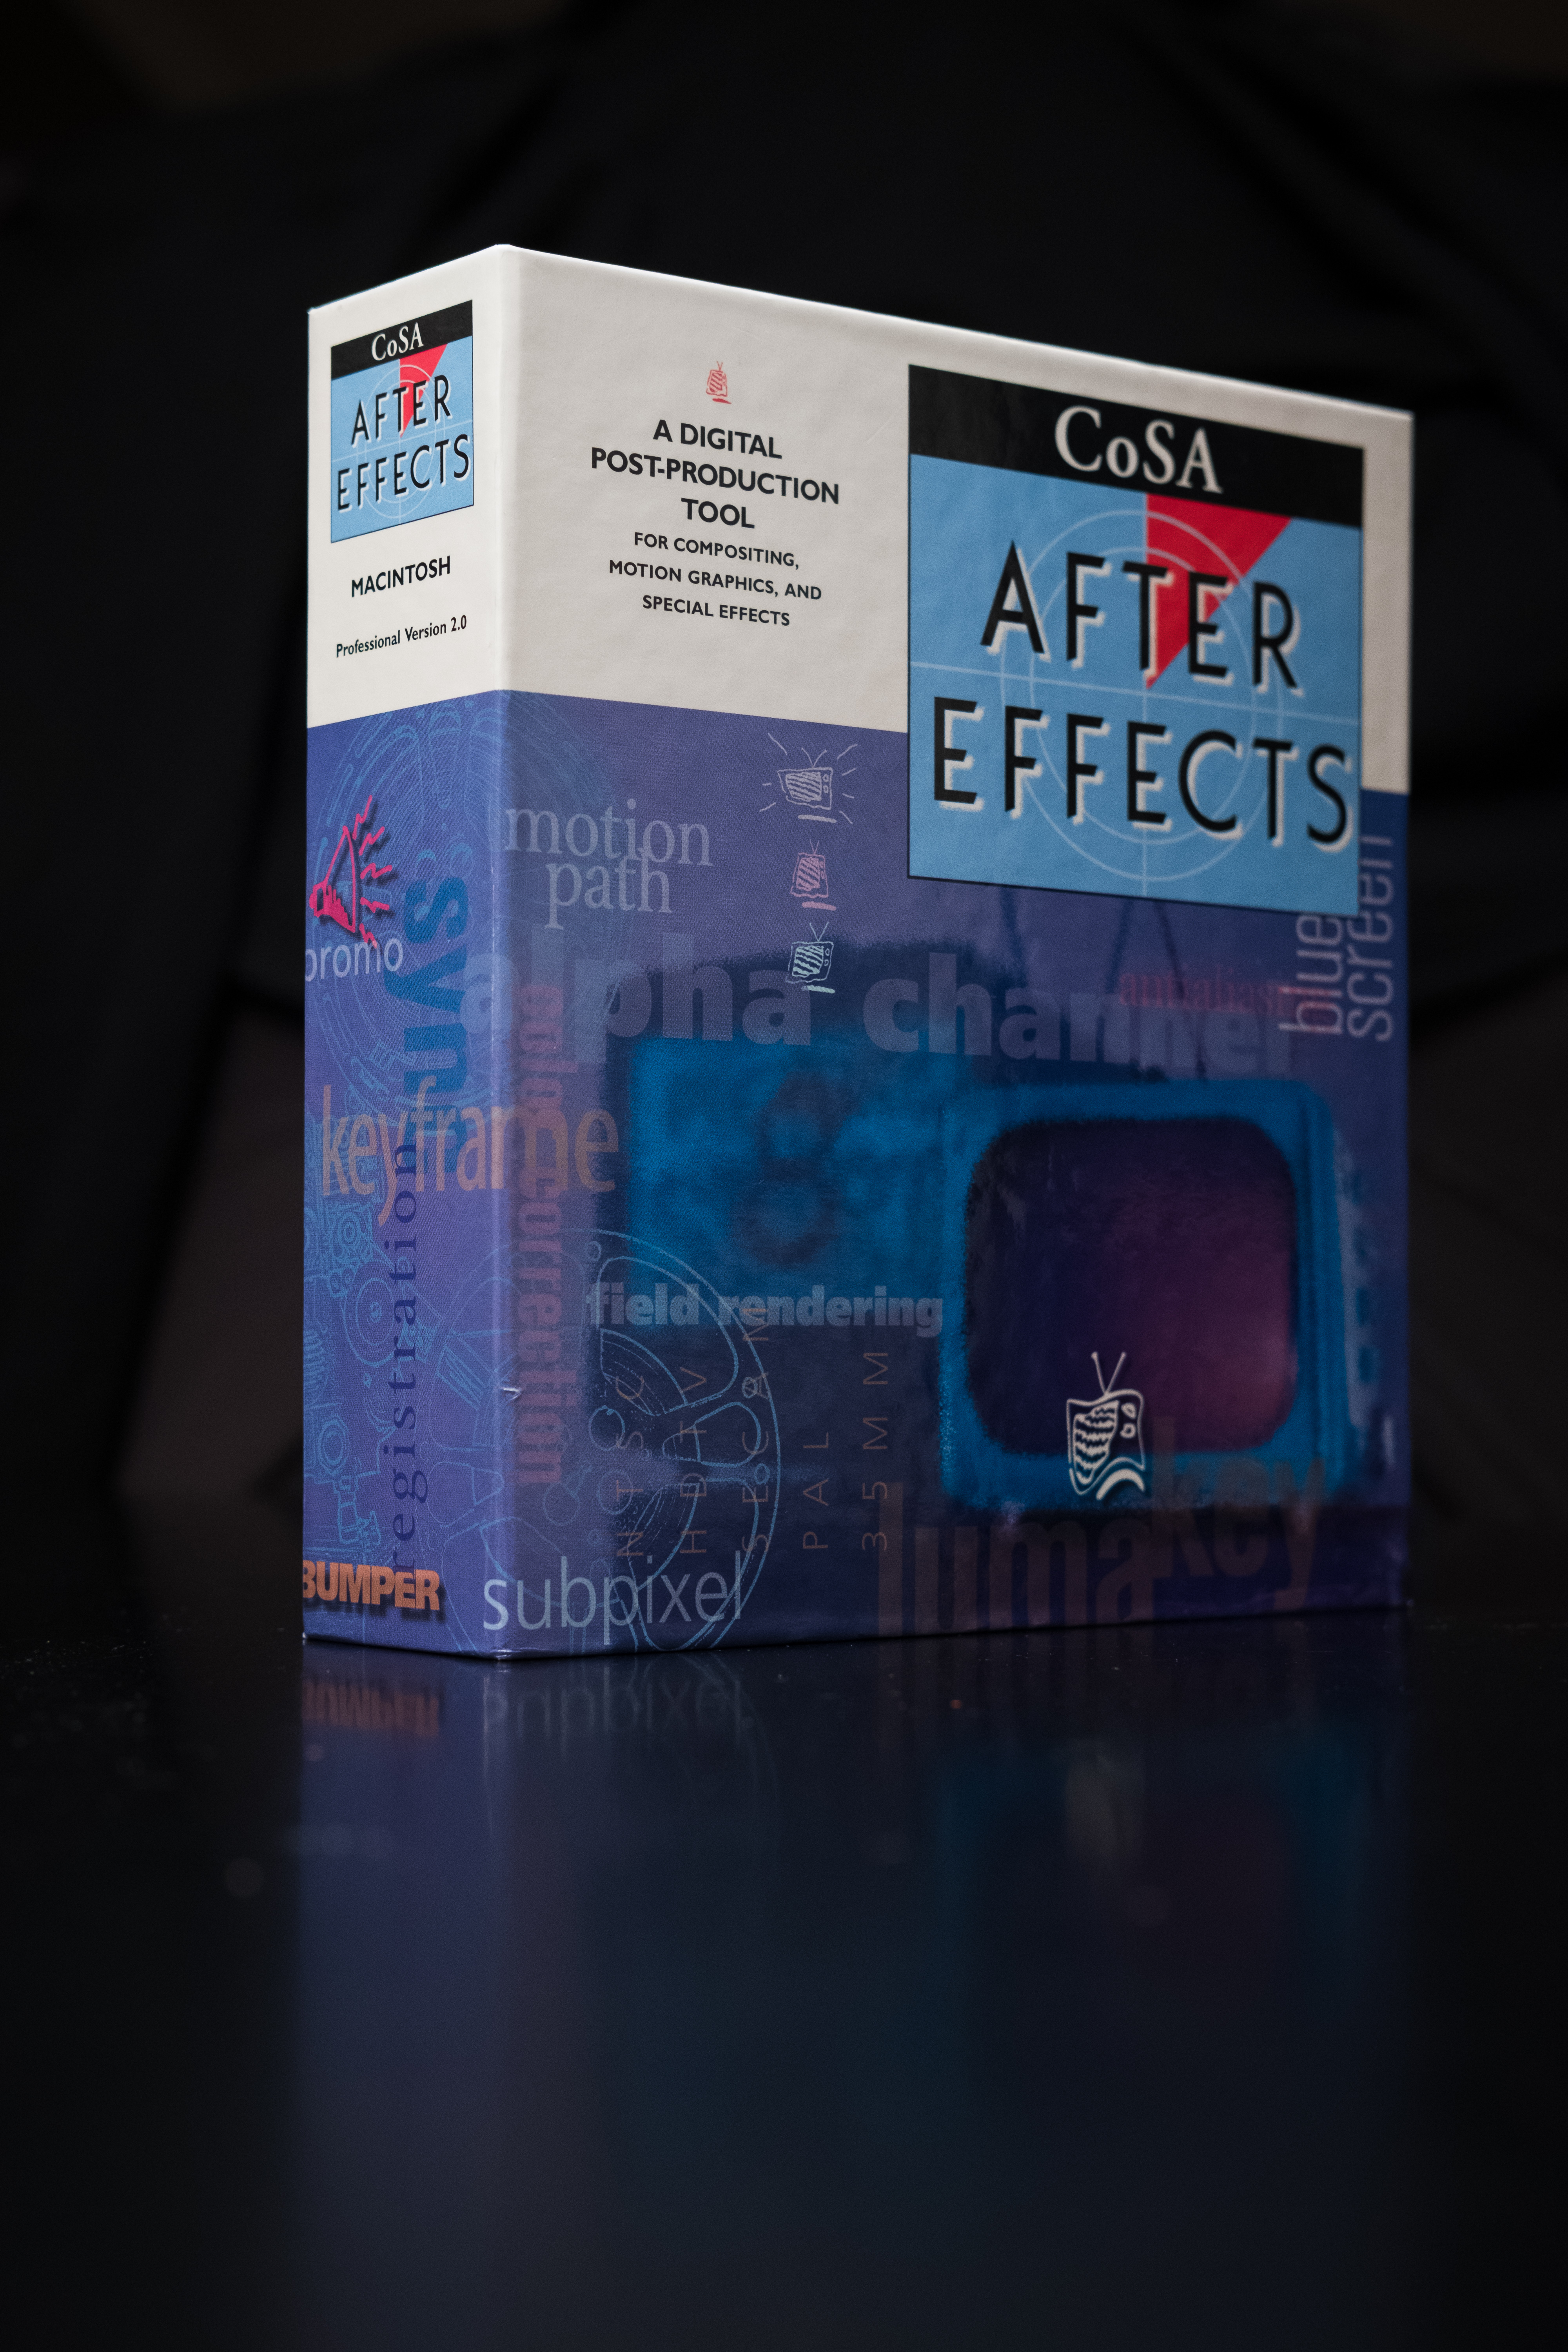 after-effects-2-0-box-shot-9480274